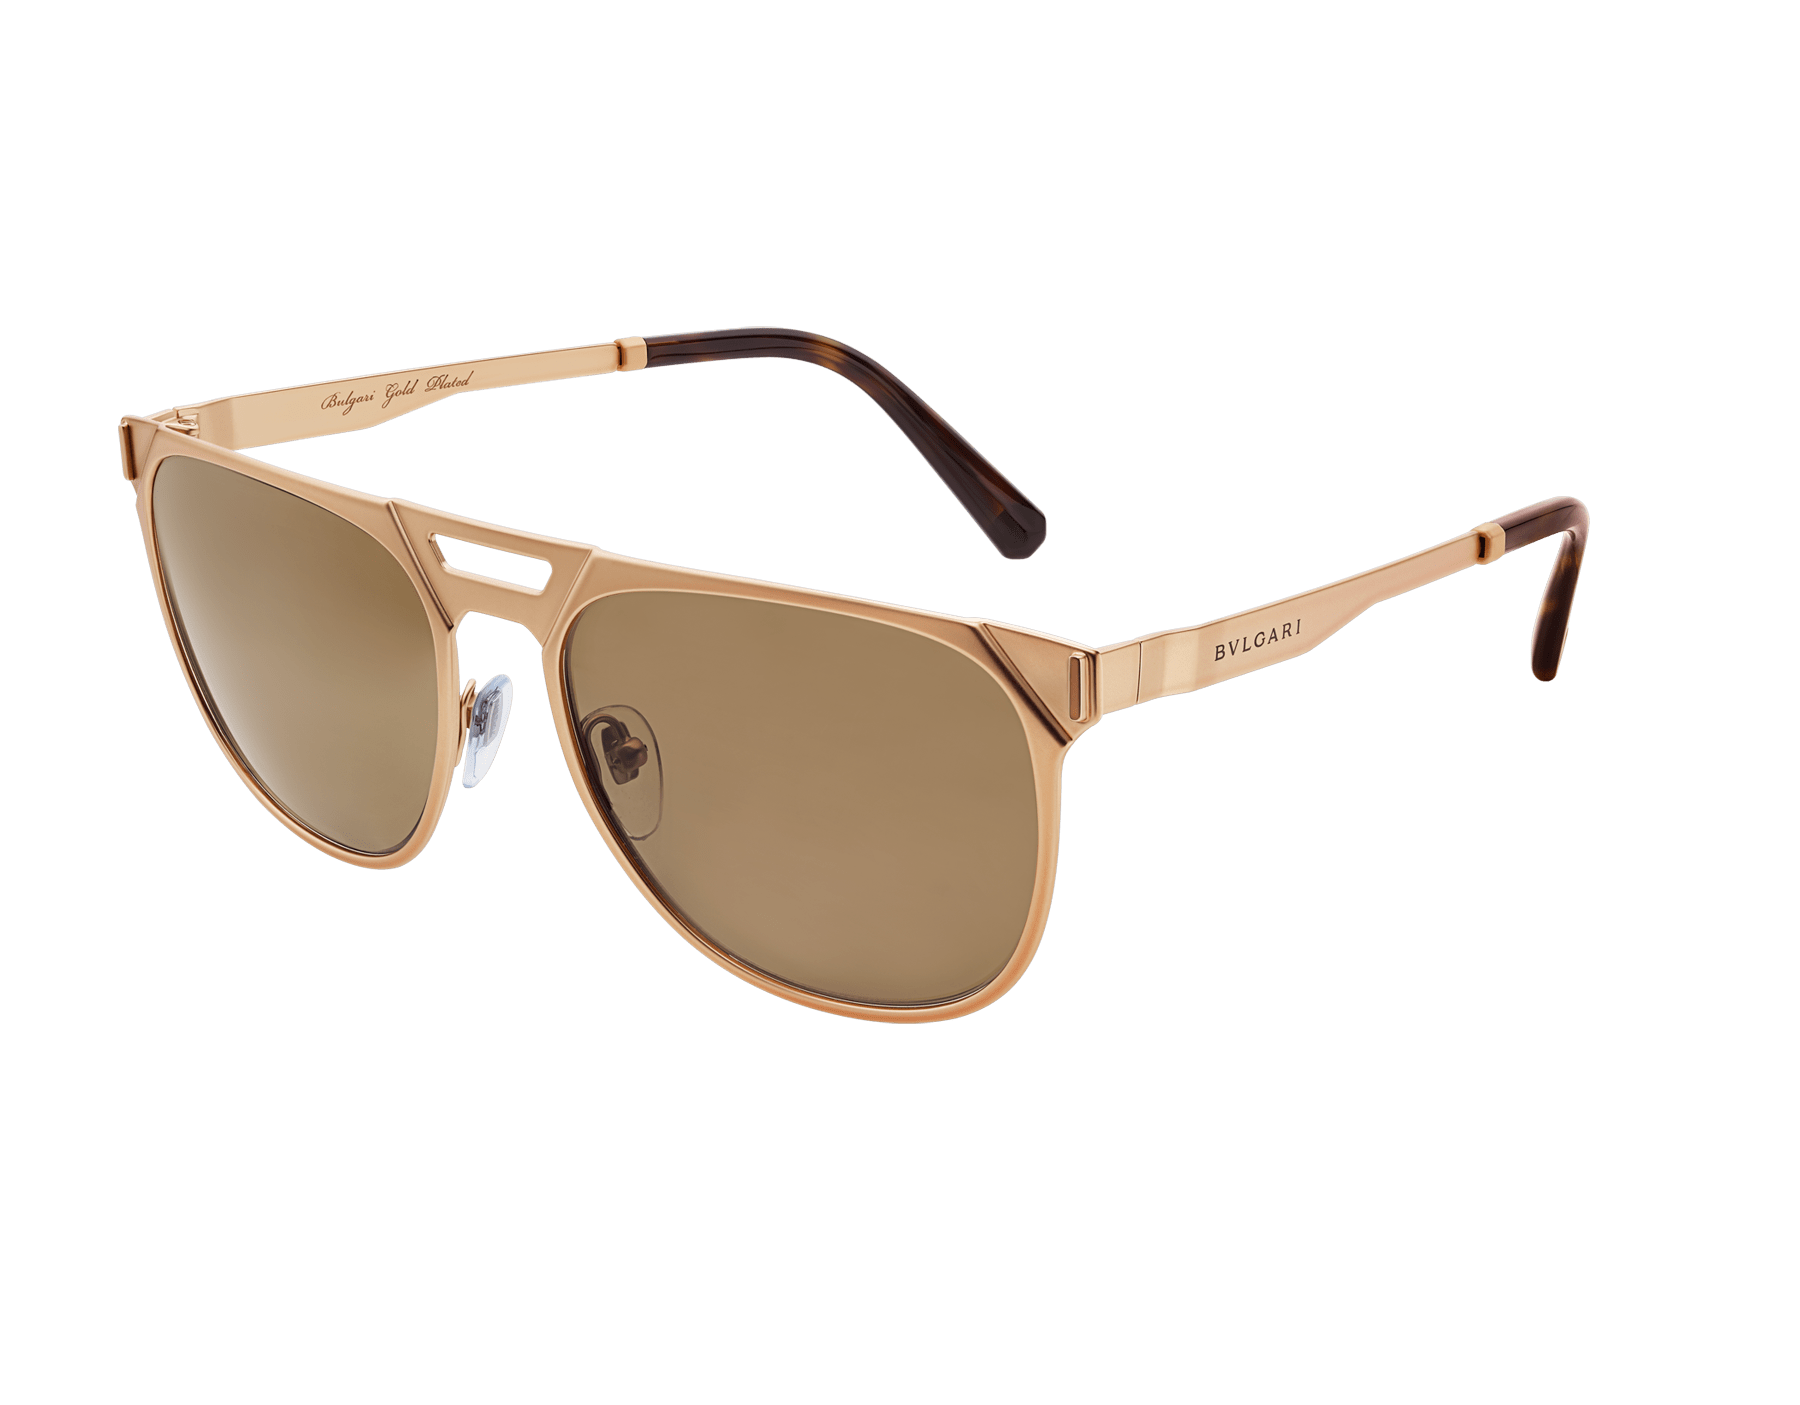 Bvlgari Octo squared pilot gold plated metal sunglasses with polar lenses. 903688 image 1